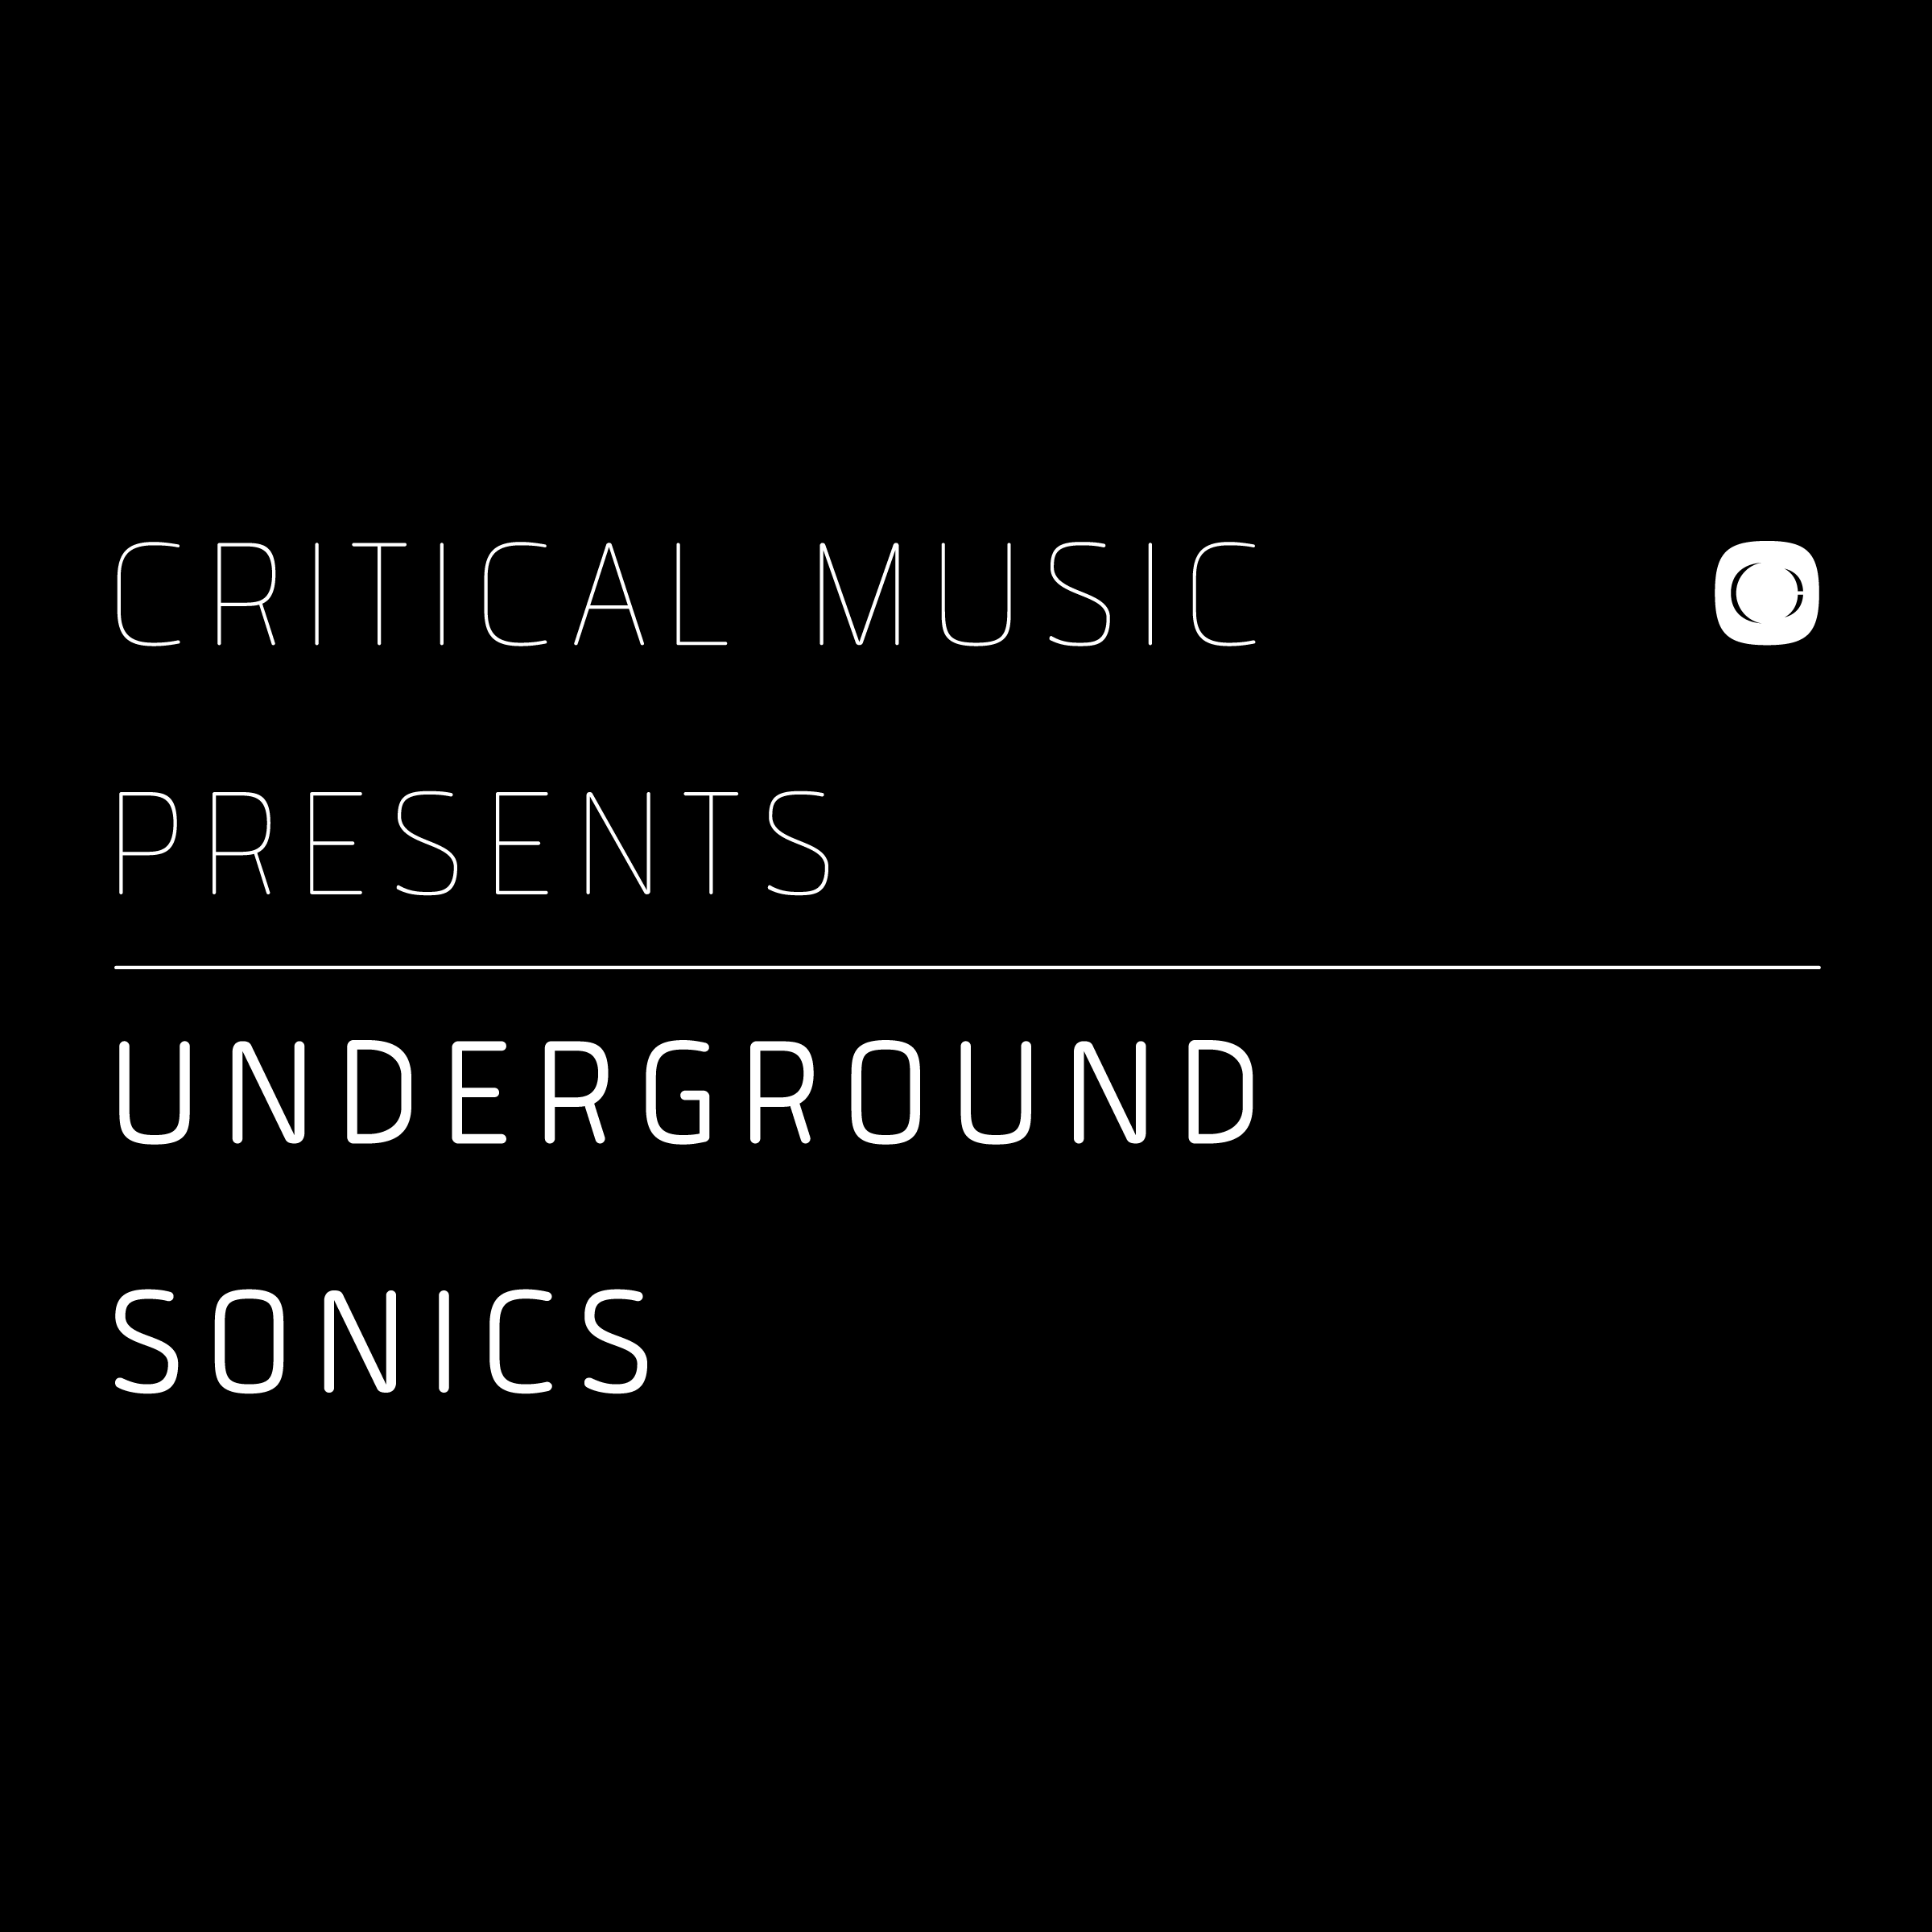 Critical Music Presents - Underground Sonics